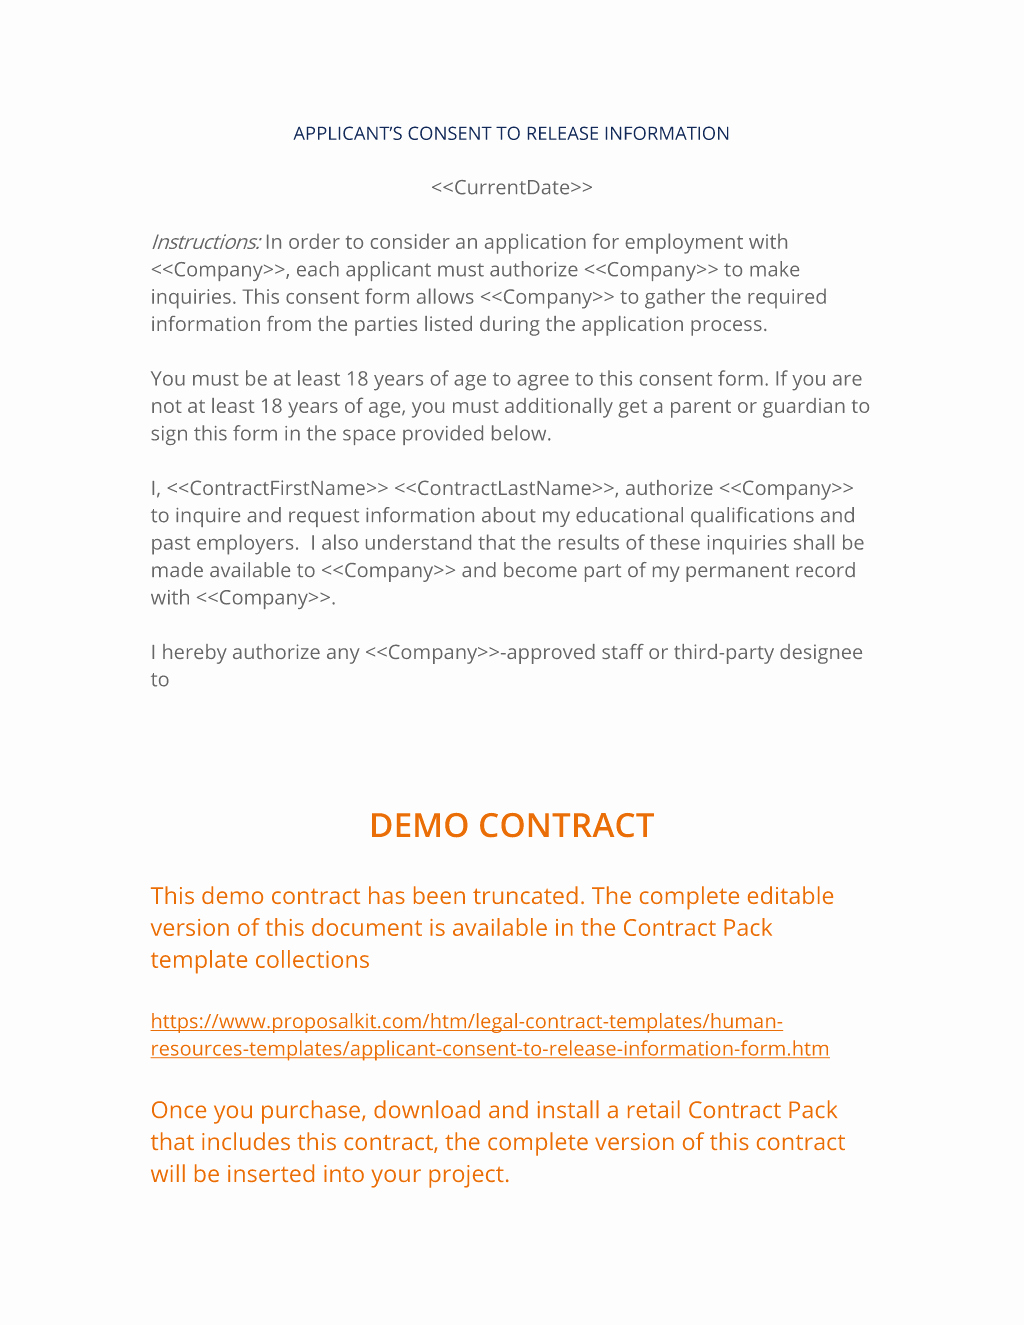 Human Resources Documents Template Elegant Applicant Consent to Release Information 3 Easy Steps